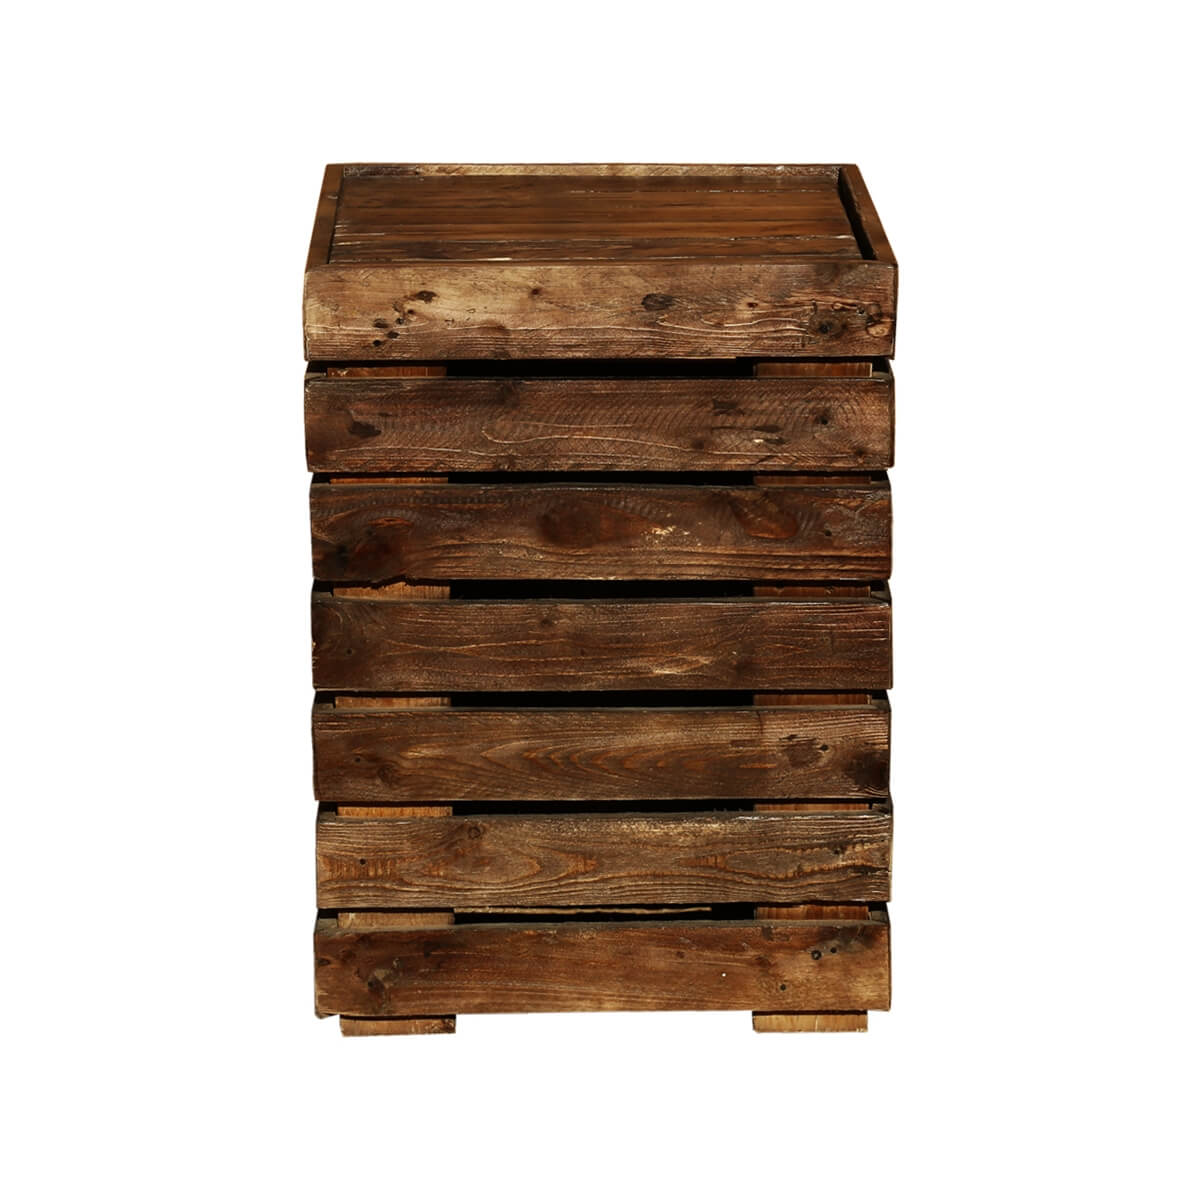 Modern Pioneer Mango Wood 18u201d Square Rustic End Table